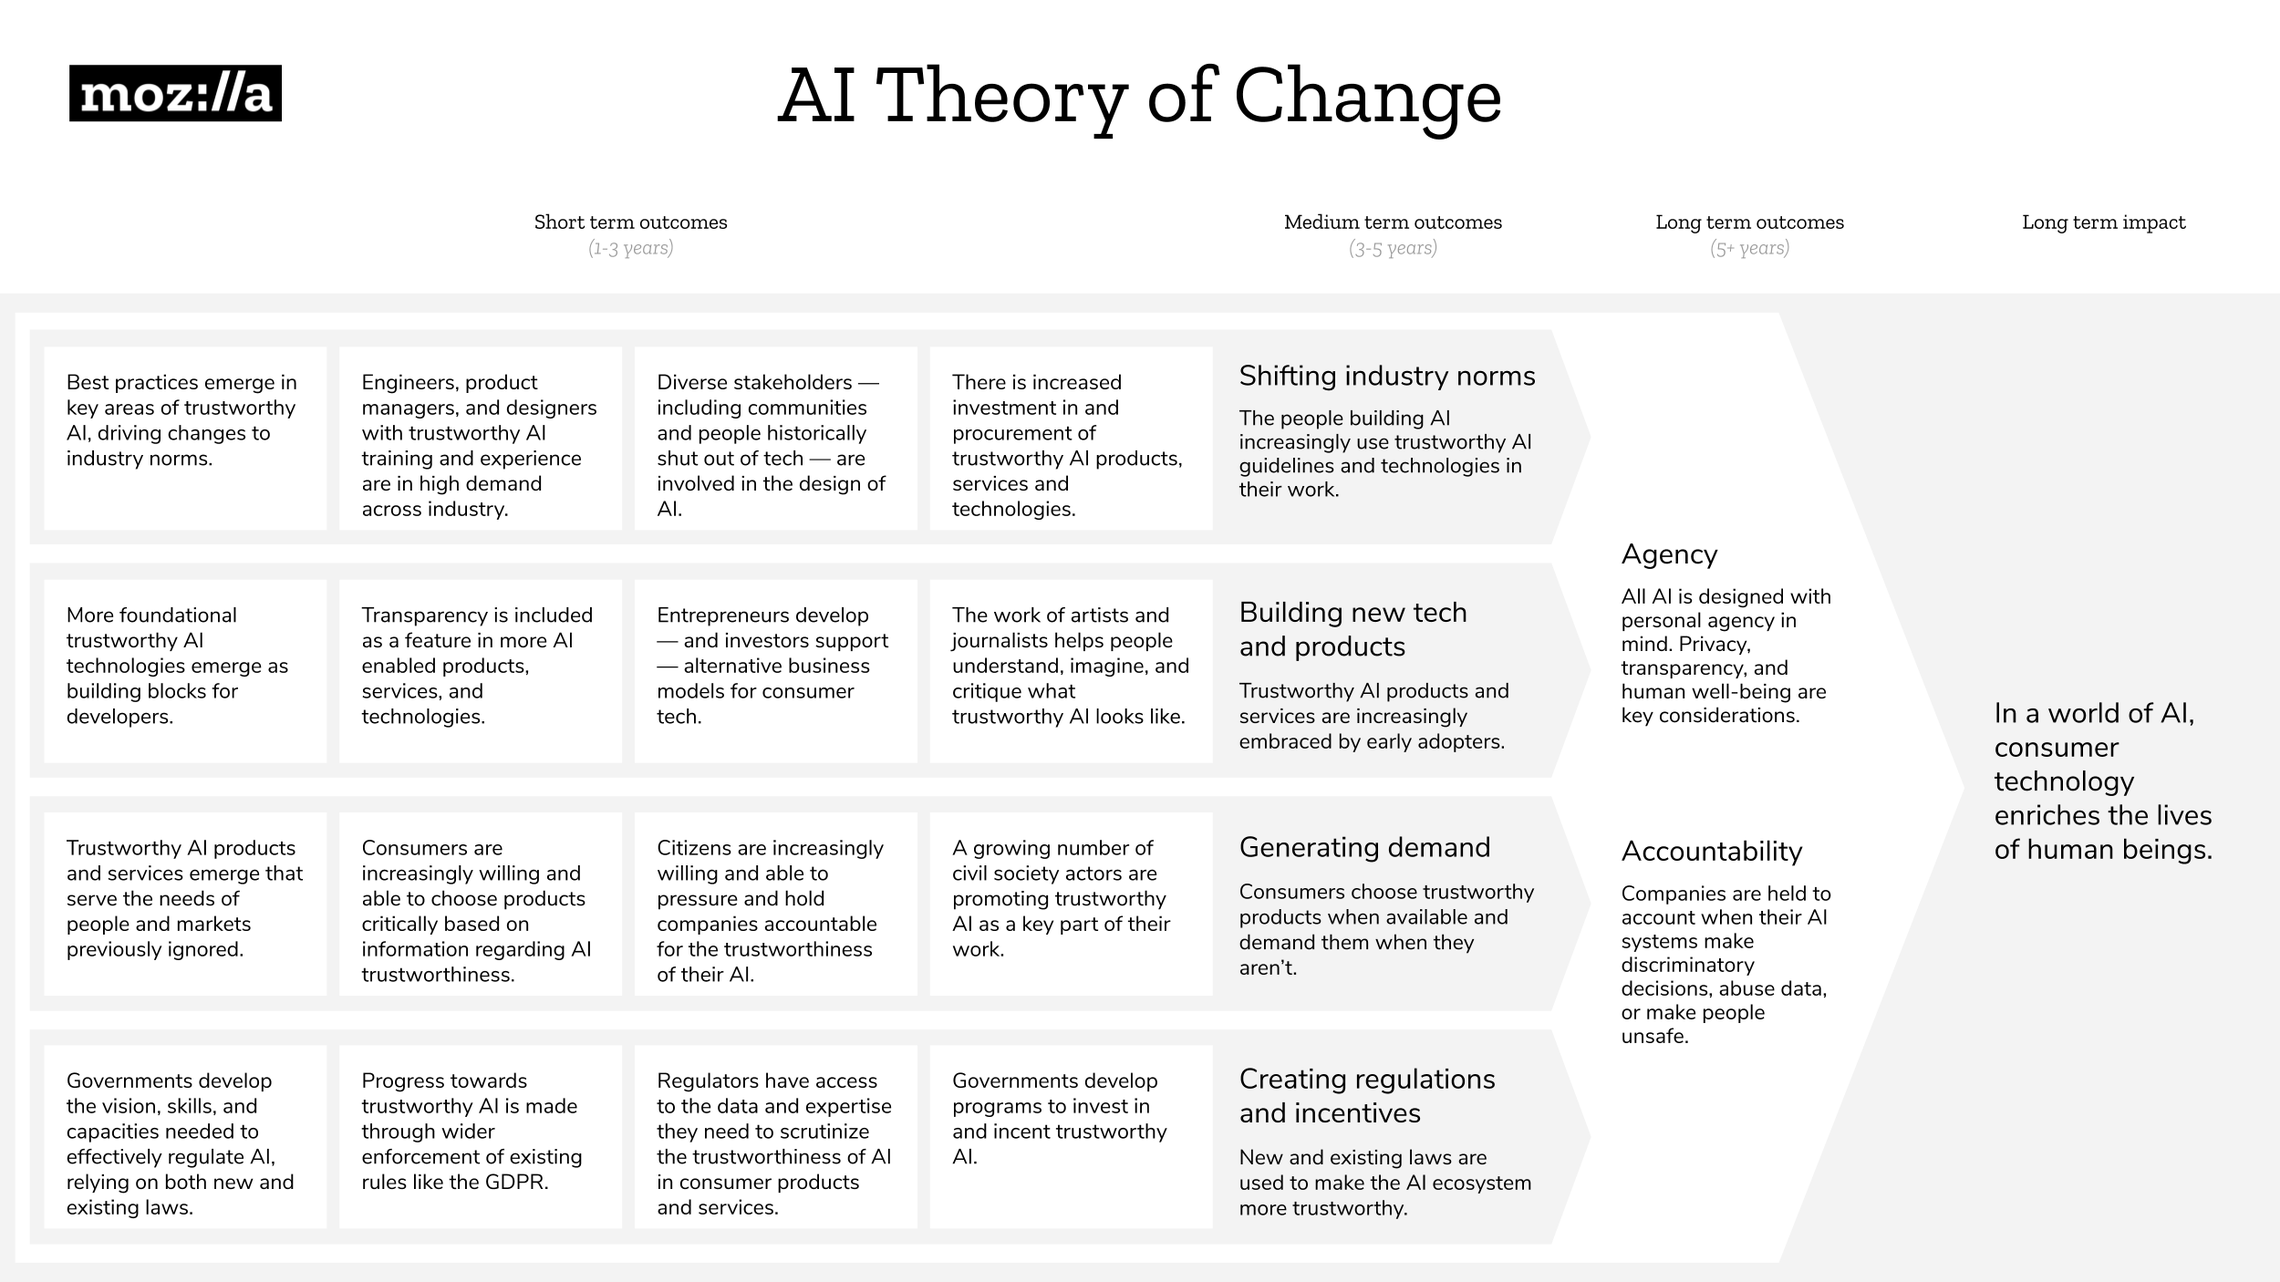 MoFo AI Theory of Change (ToC) – Design Slide.png